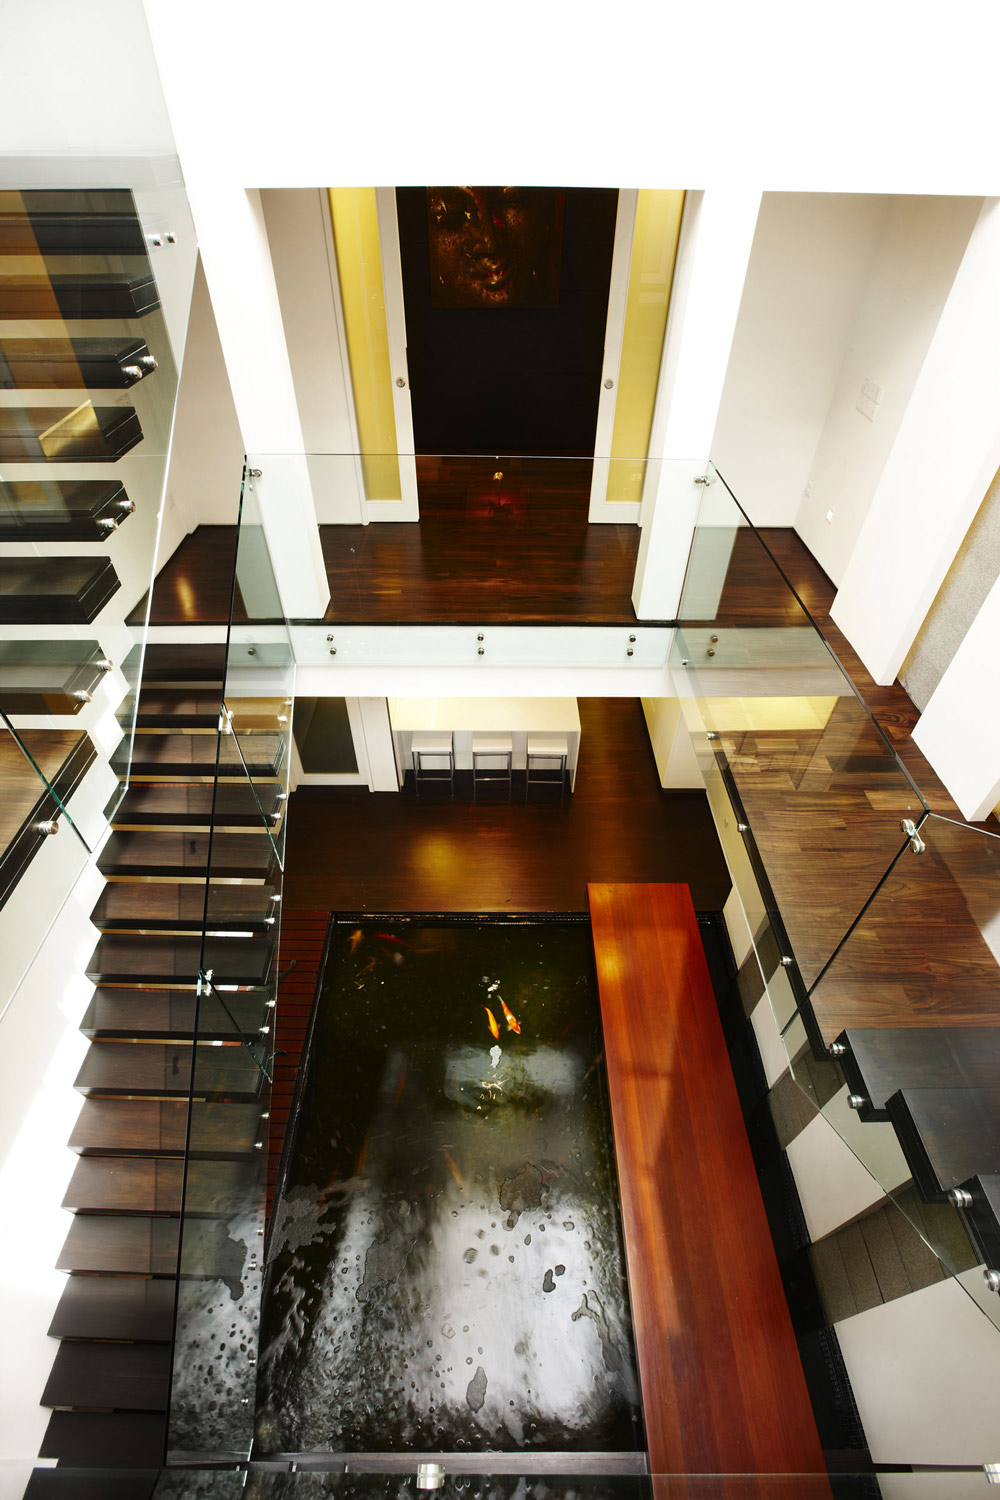 Koi Pond, Stairs, Shop House Renovation in Singapore